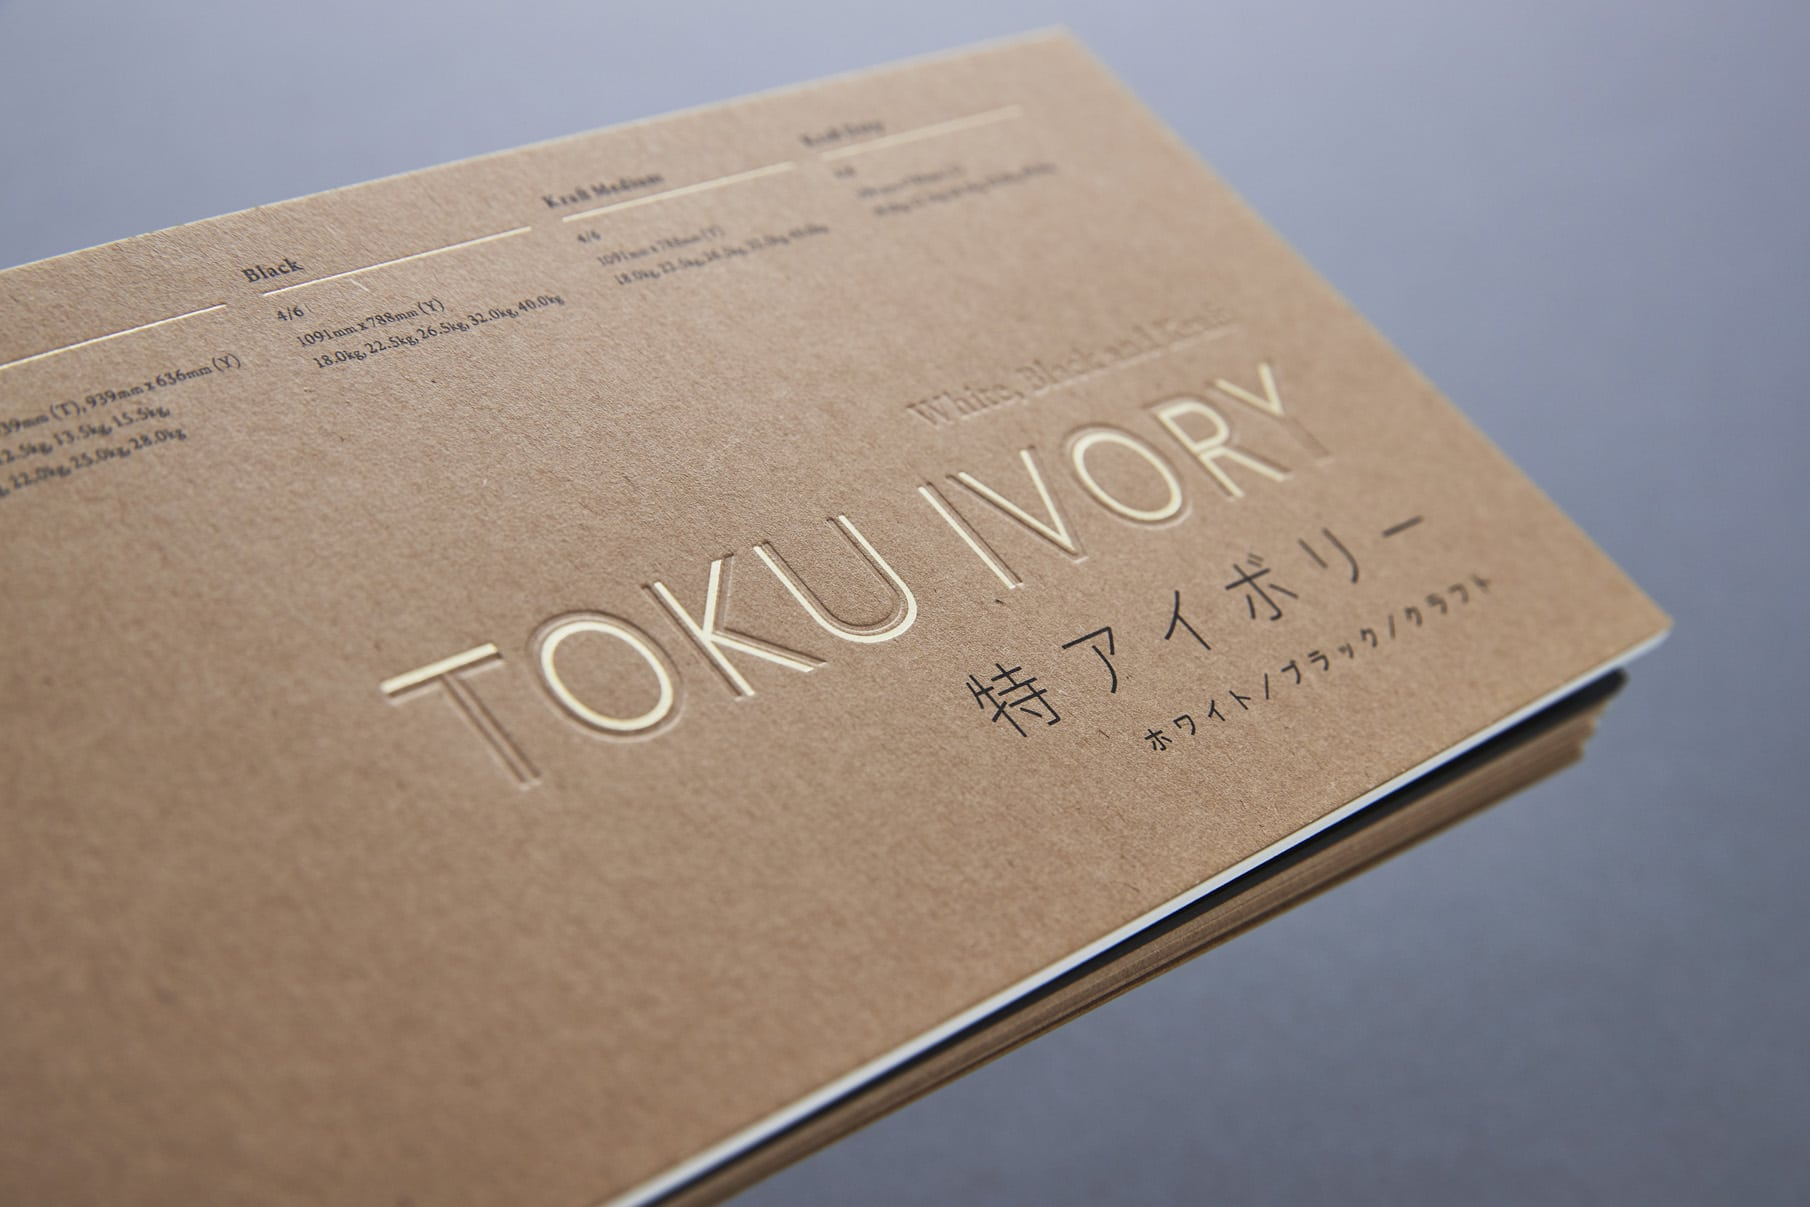 Toku Ivory - Promotion Book 3